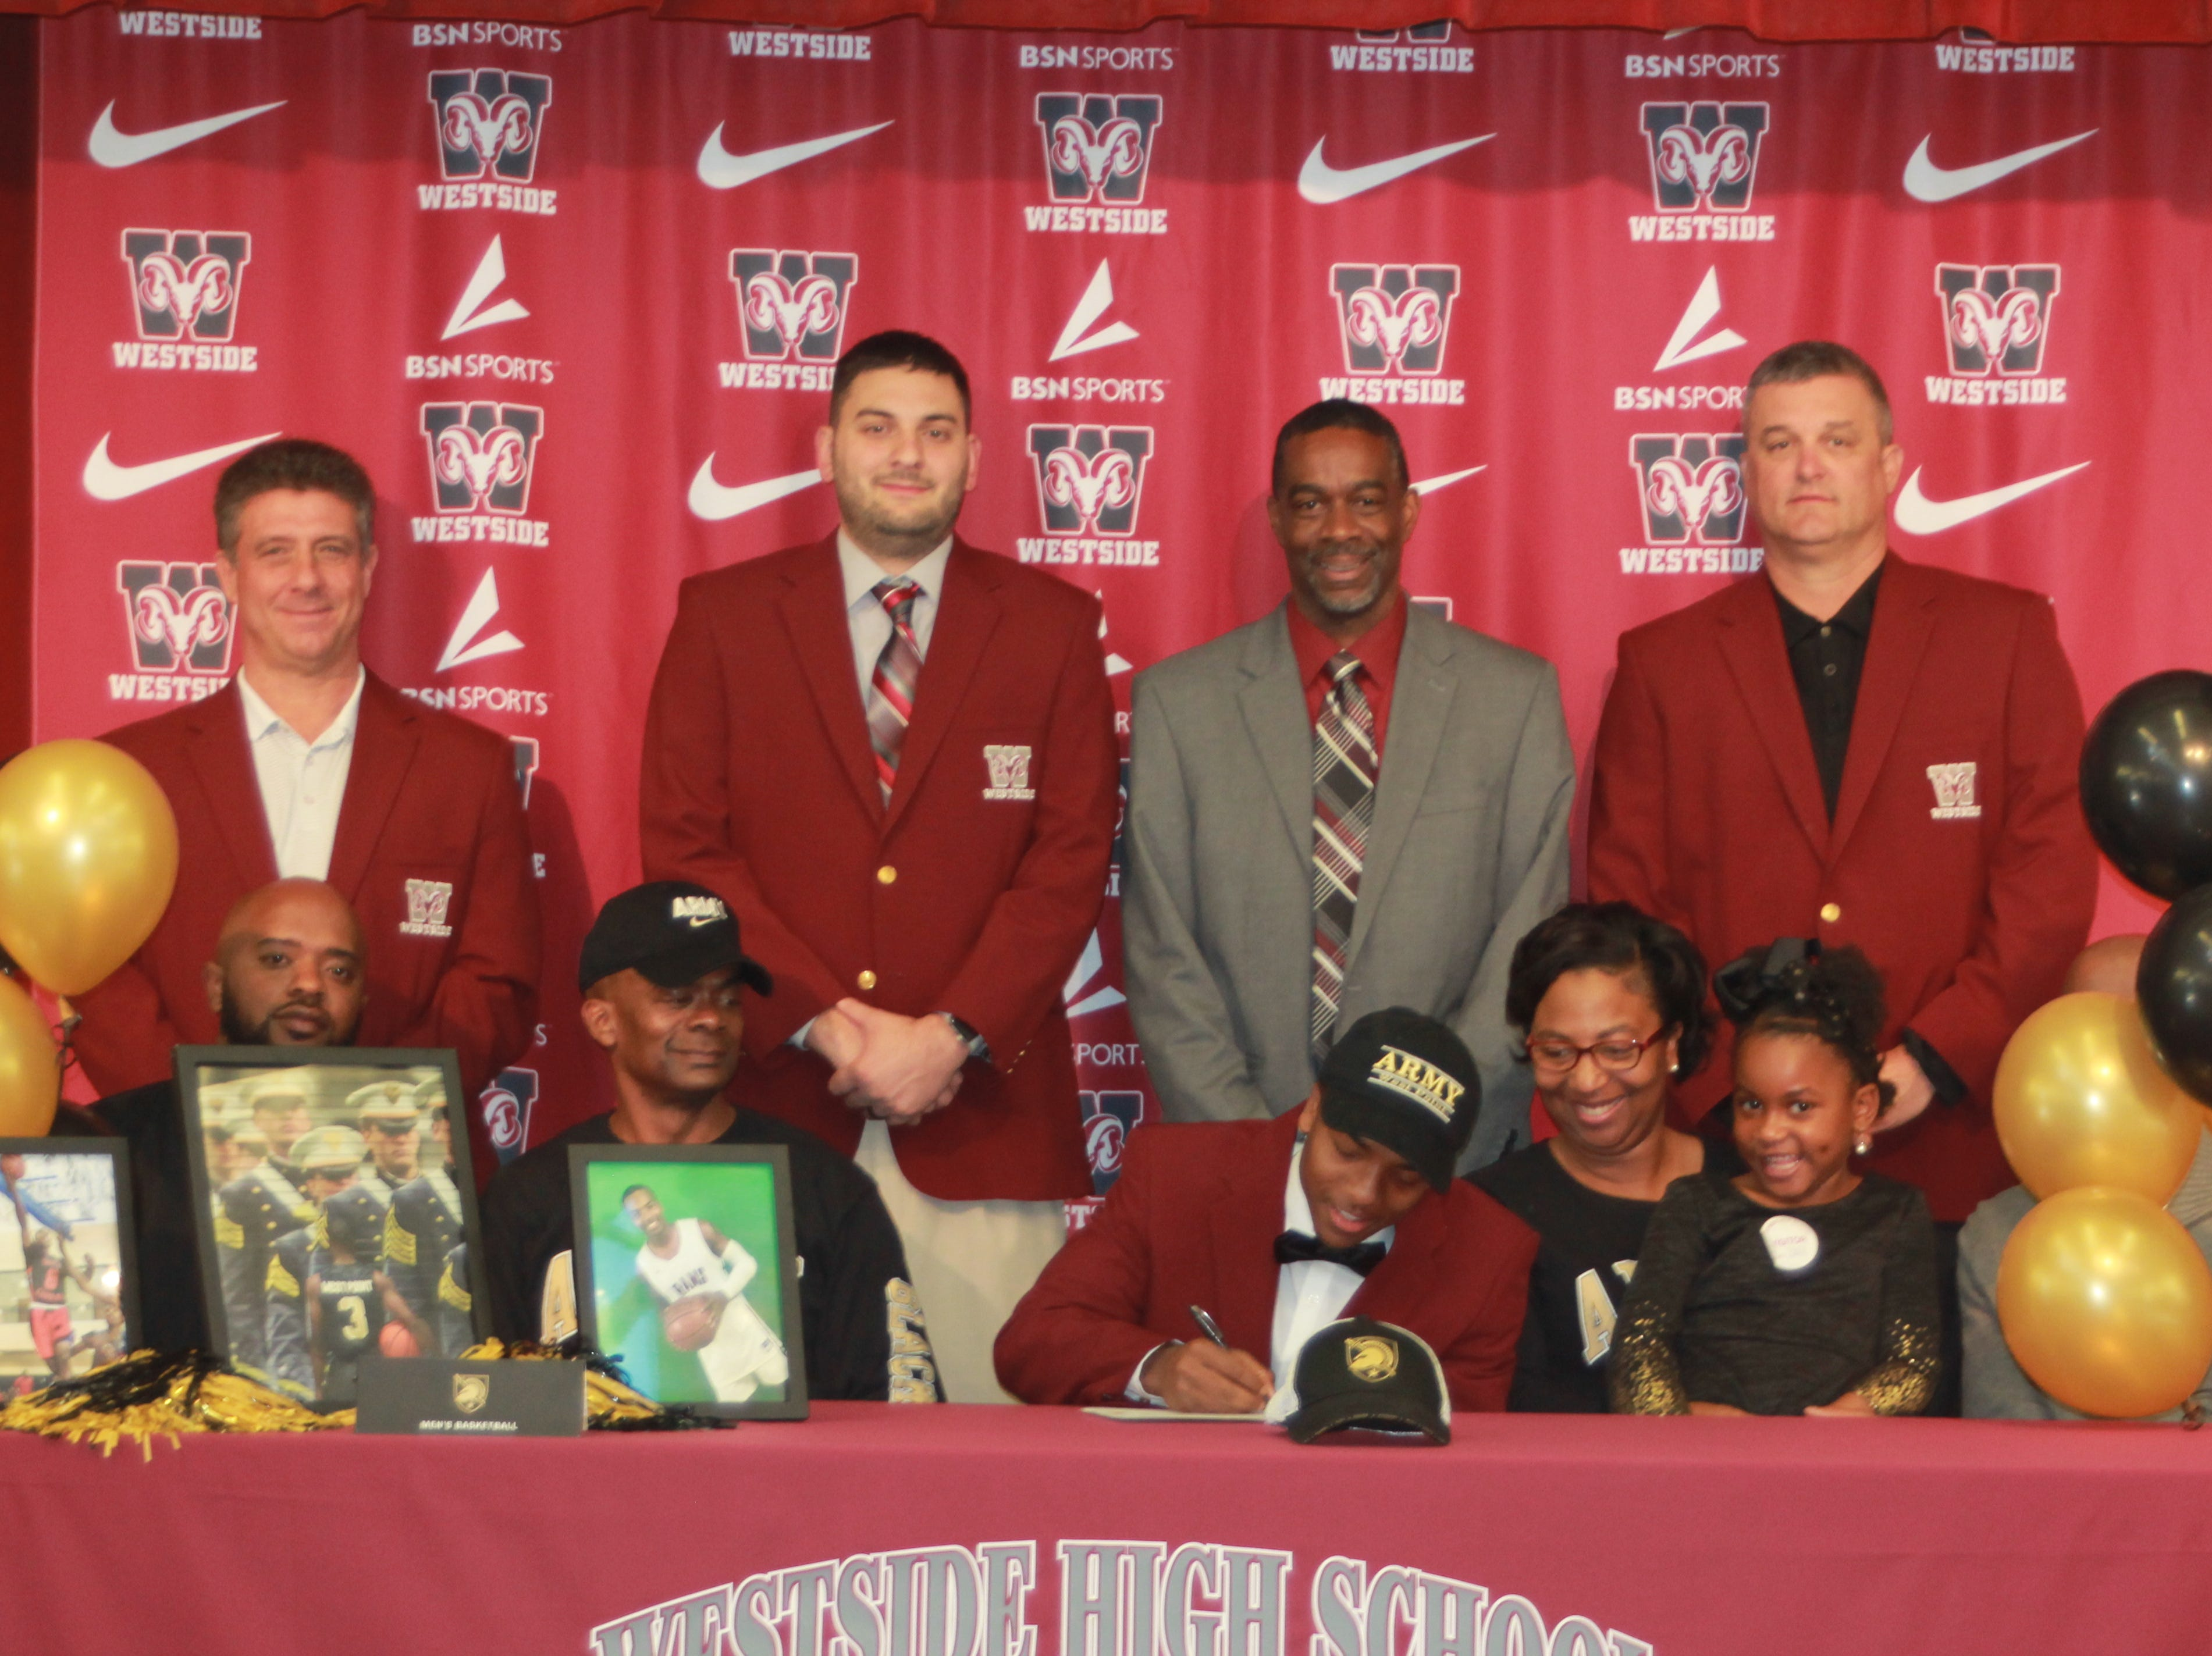 "Traye Carson, a senior at Westside High School in Anderson, signed with Army to play Division I basketball. In attendance on Tuesday, Nov. 20, 2018, were family members, current and former coaches, and his teammates. Carson is a three-sport athlete at Westside with a 4.5 GPA and is in the top 15 percent of his senior class. In his address to those in attendance, Carson thanked his current and former coaches, his family for their support, his teammates and God. He stated that, ""This is an opportunity that a lot of people don't get. I'm just ready to serve my country."" In the picture here, front row, from left: Michael Carson Jr., Michael Carson Sr., Traye Carson, Nikki Carson, Ayden-Joy Purdessy, Trenton Carson, along with his coaches."